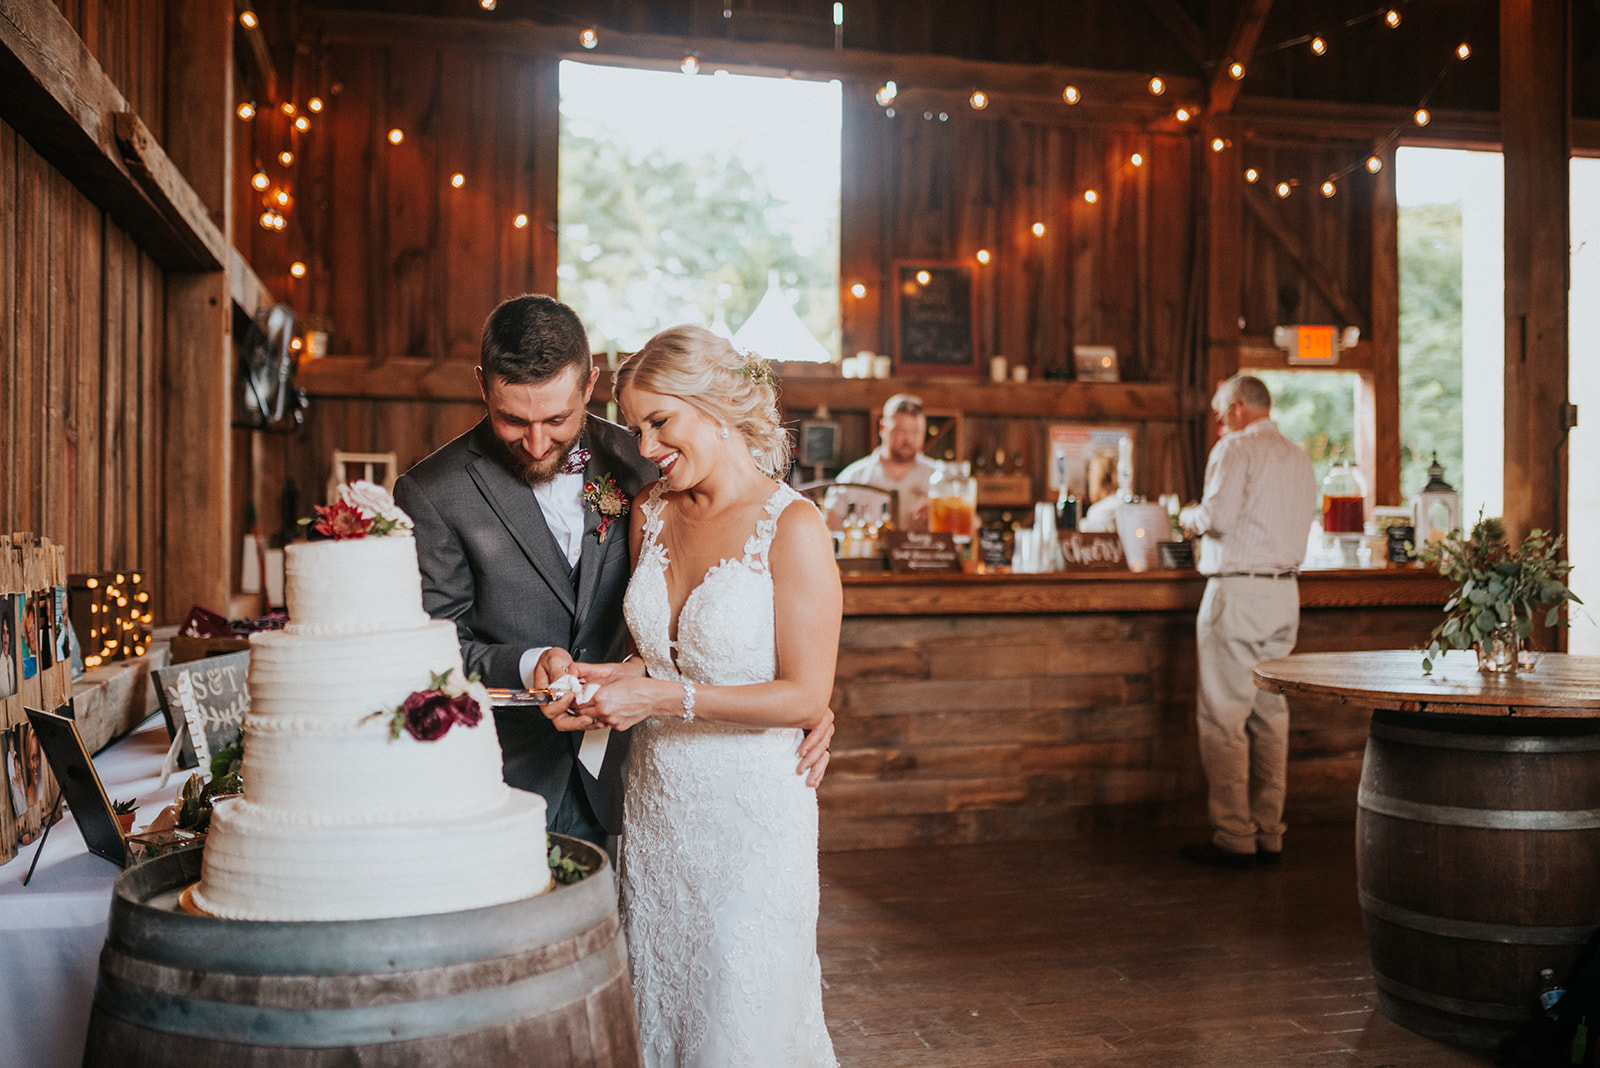 overthevineswisconsinwedding_1184.jpg